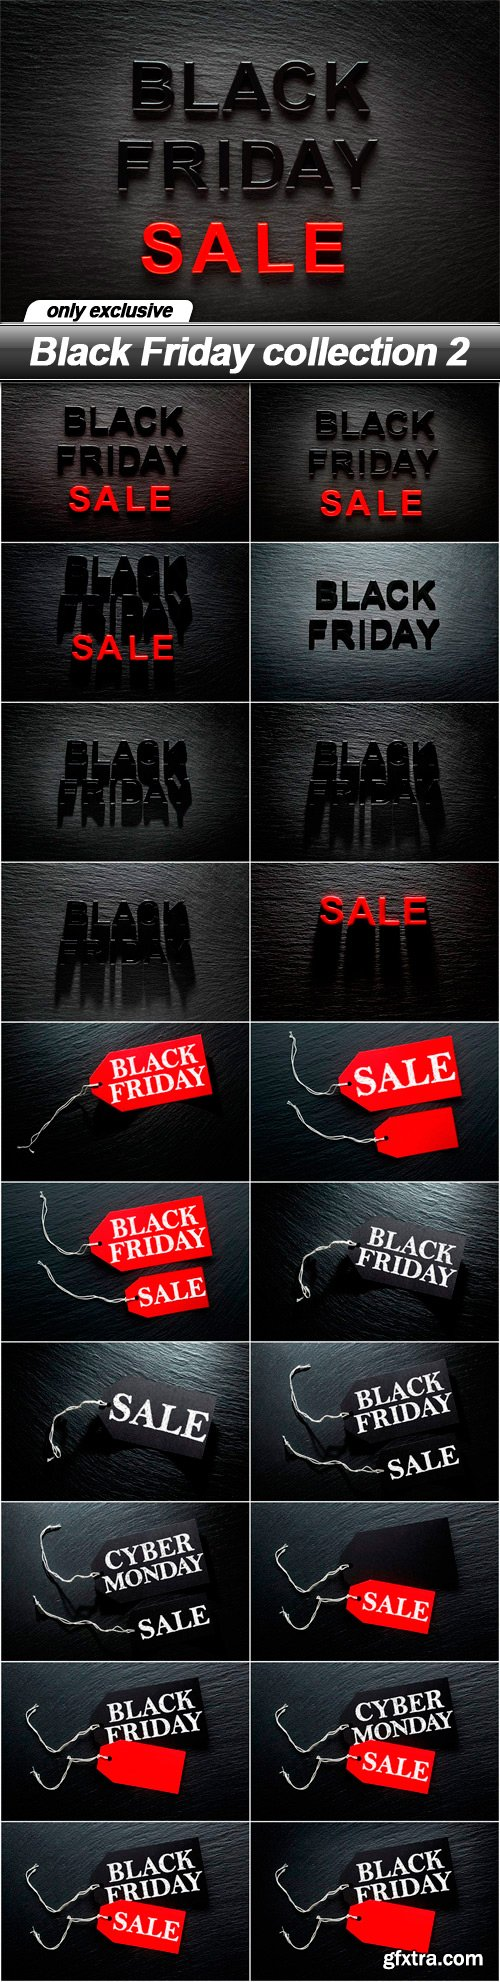 Black Friday collection 2 - 20 UHQ JPEG